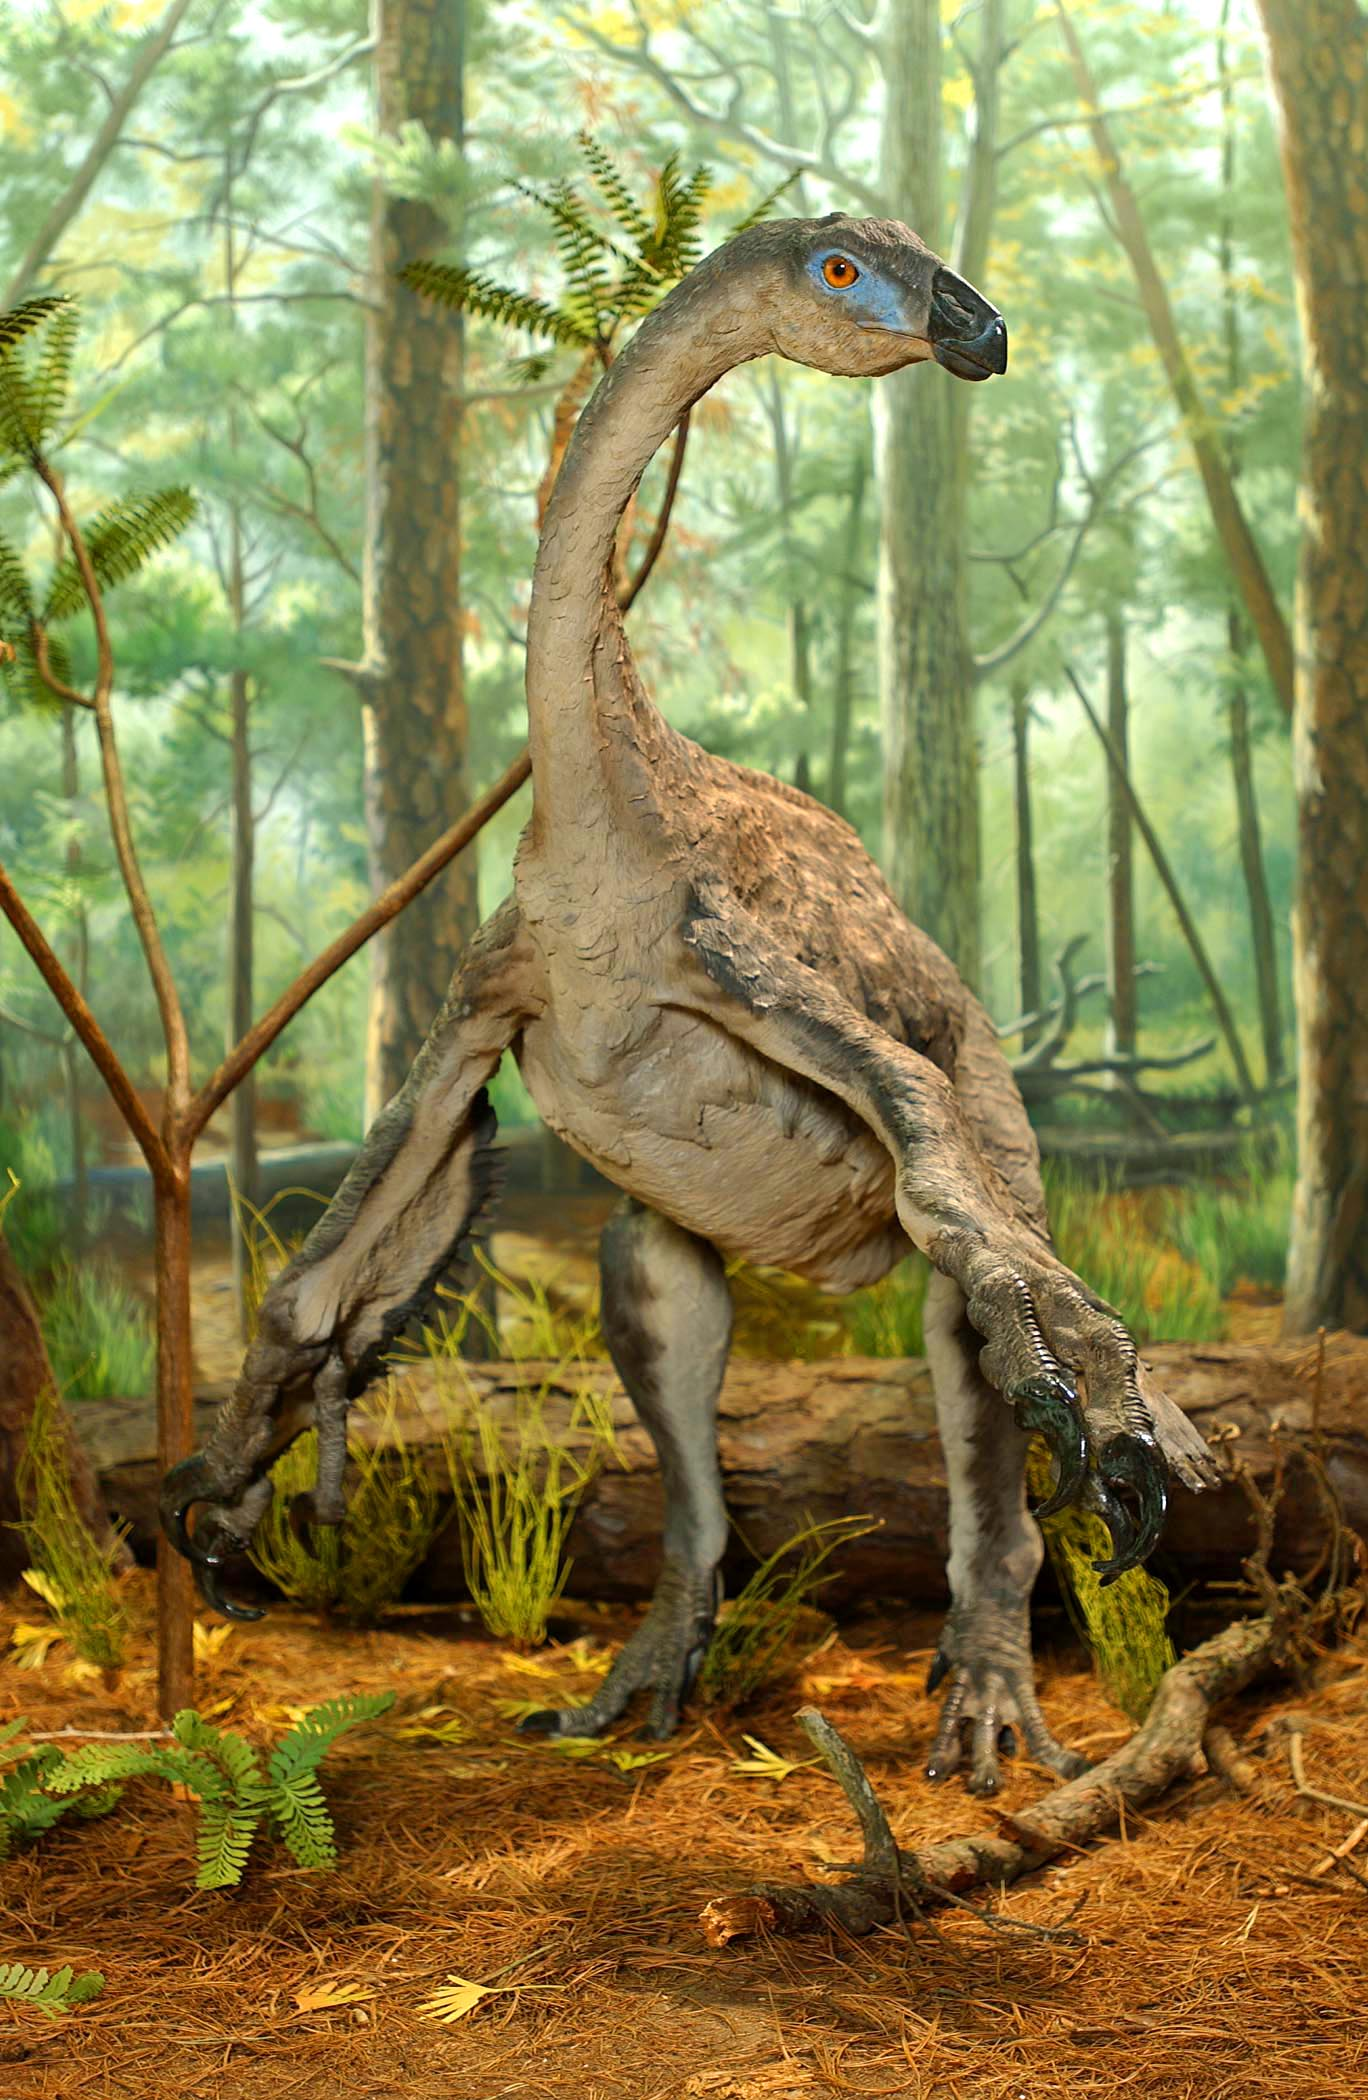 Dinosaurs: Ancient Fossils, New Discoveries | Museum of ...